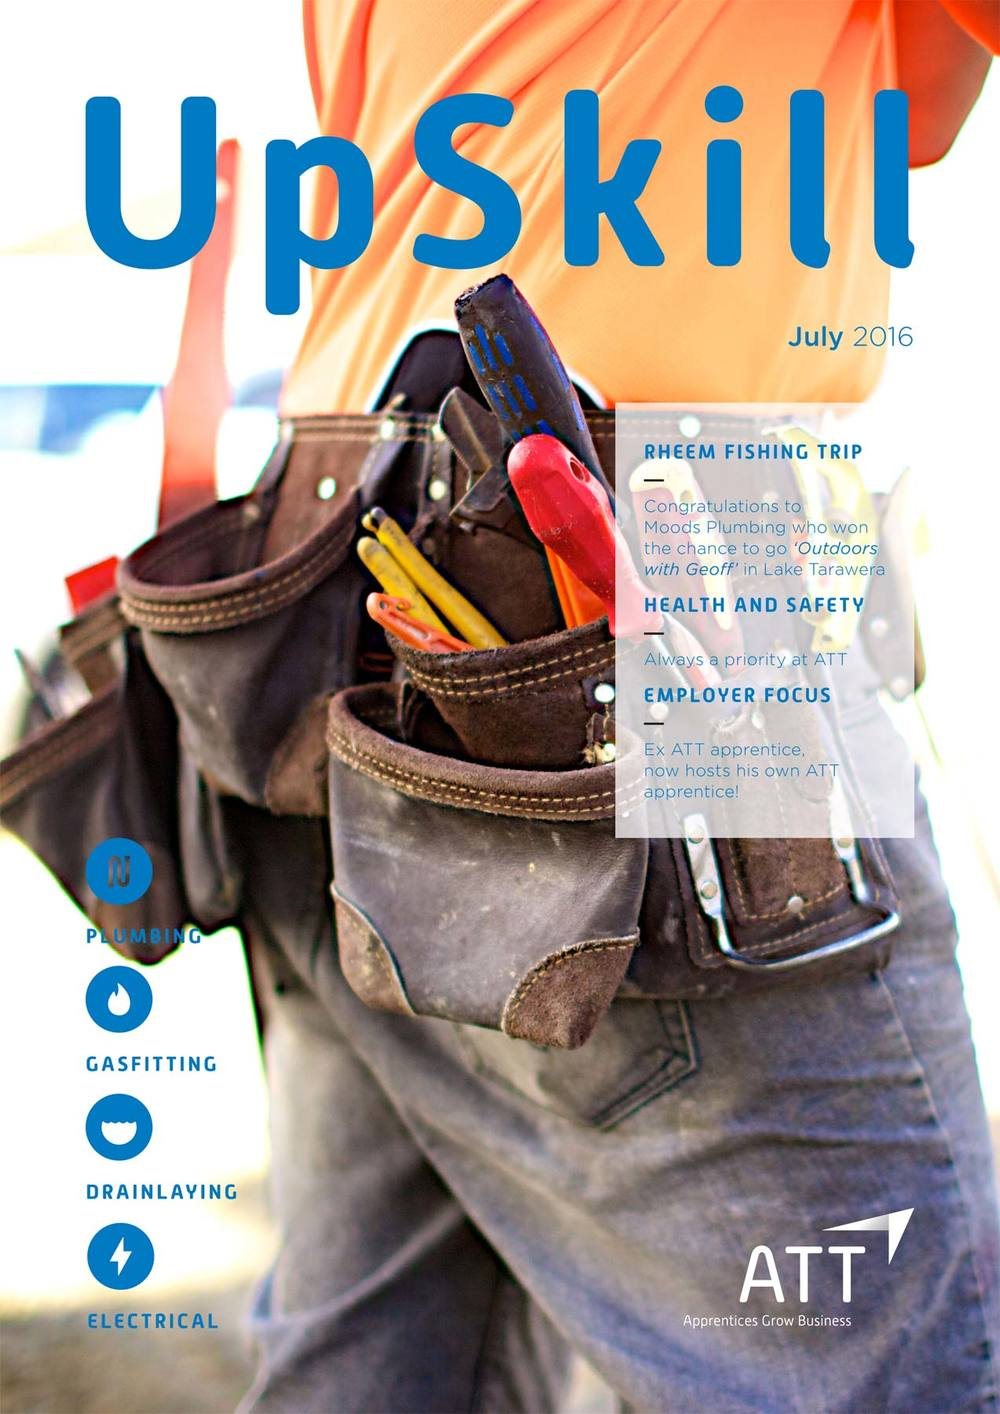 July 2016 Issue of UpSkill from ATT